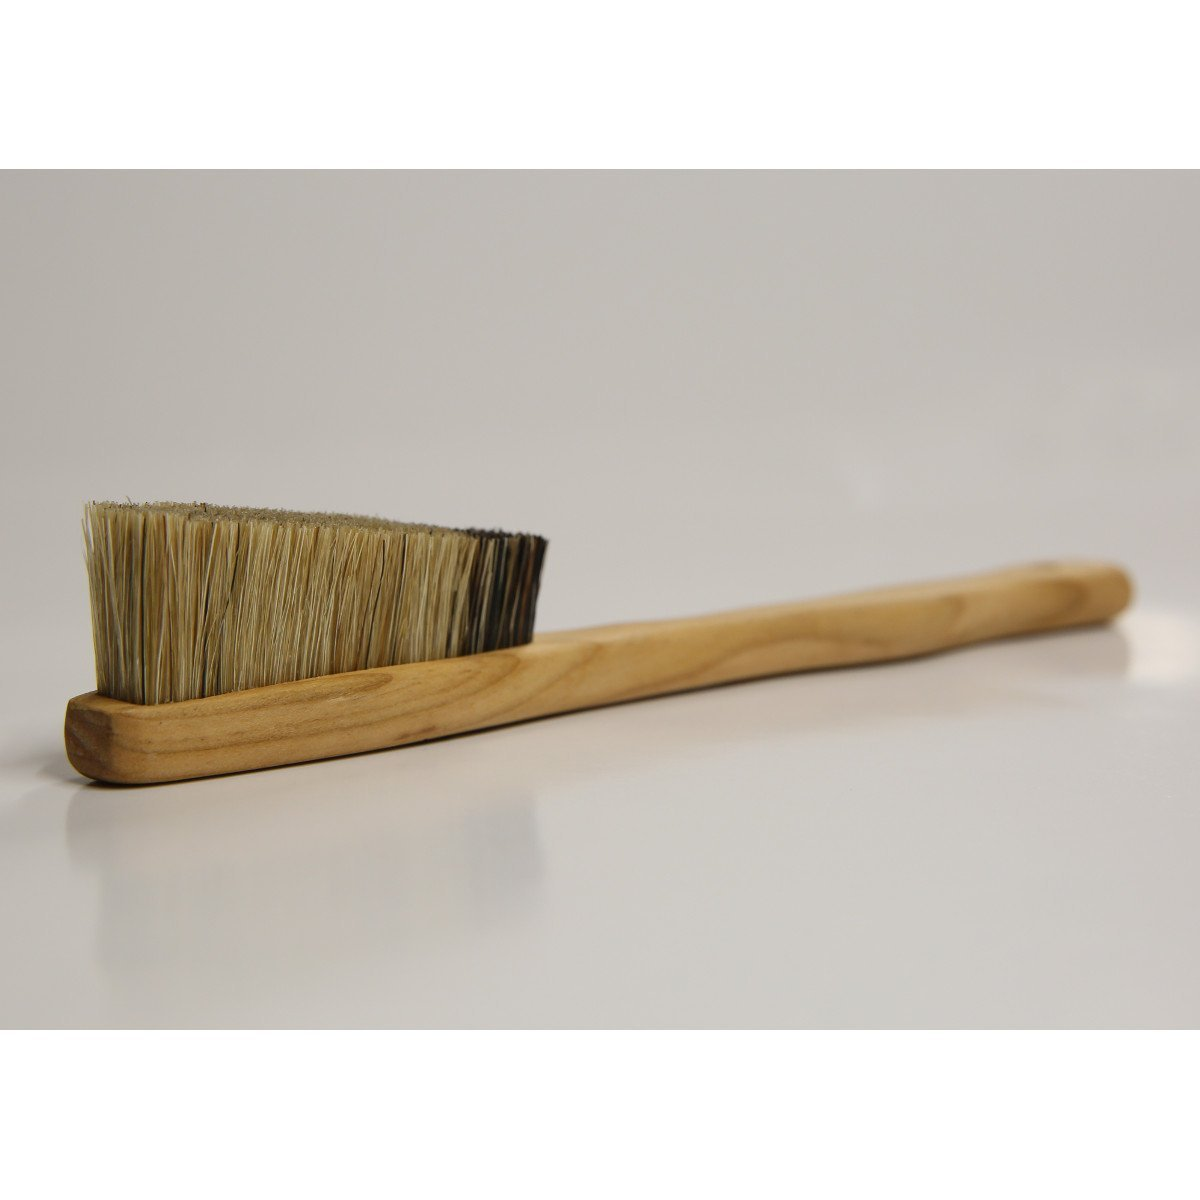 EB Cherry Wood Brush shown laid on a surface